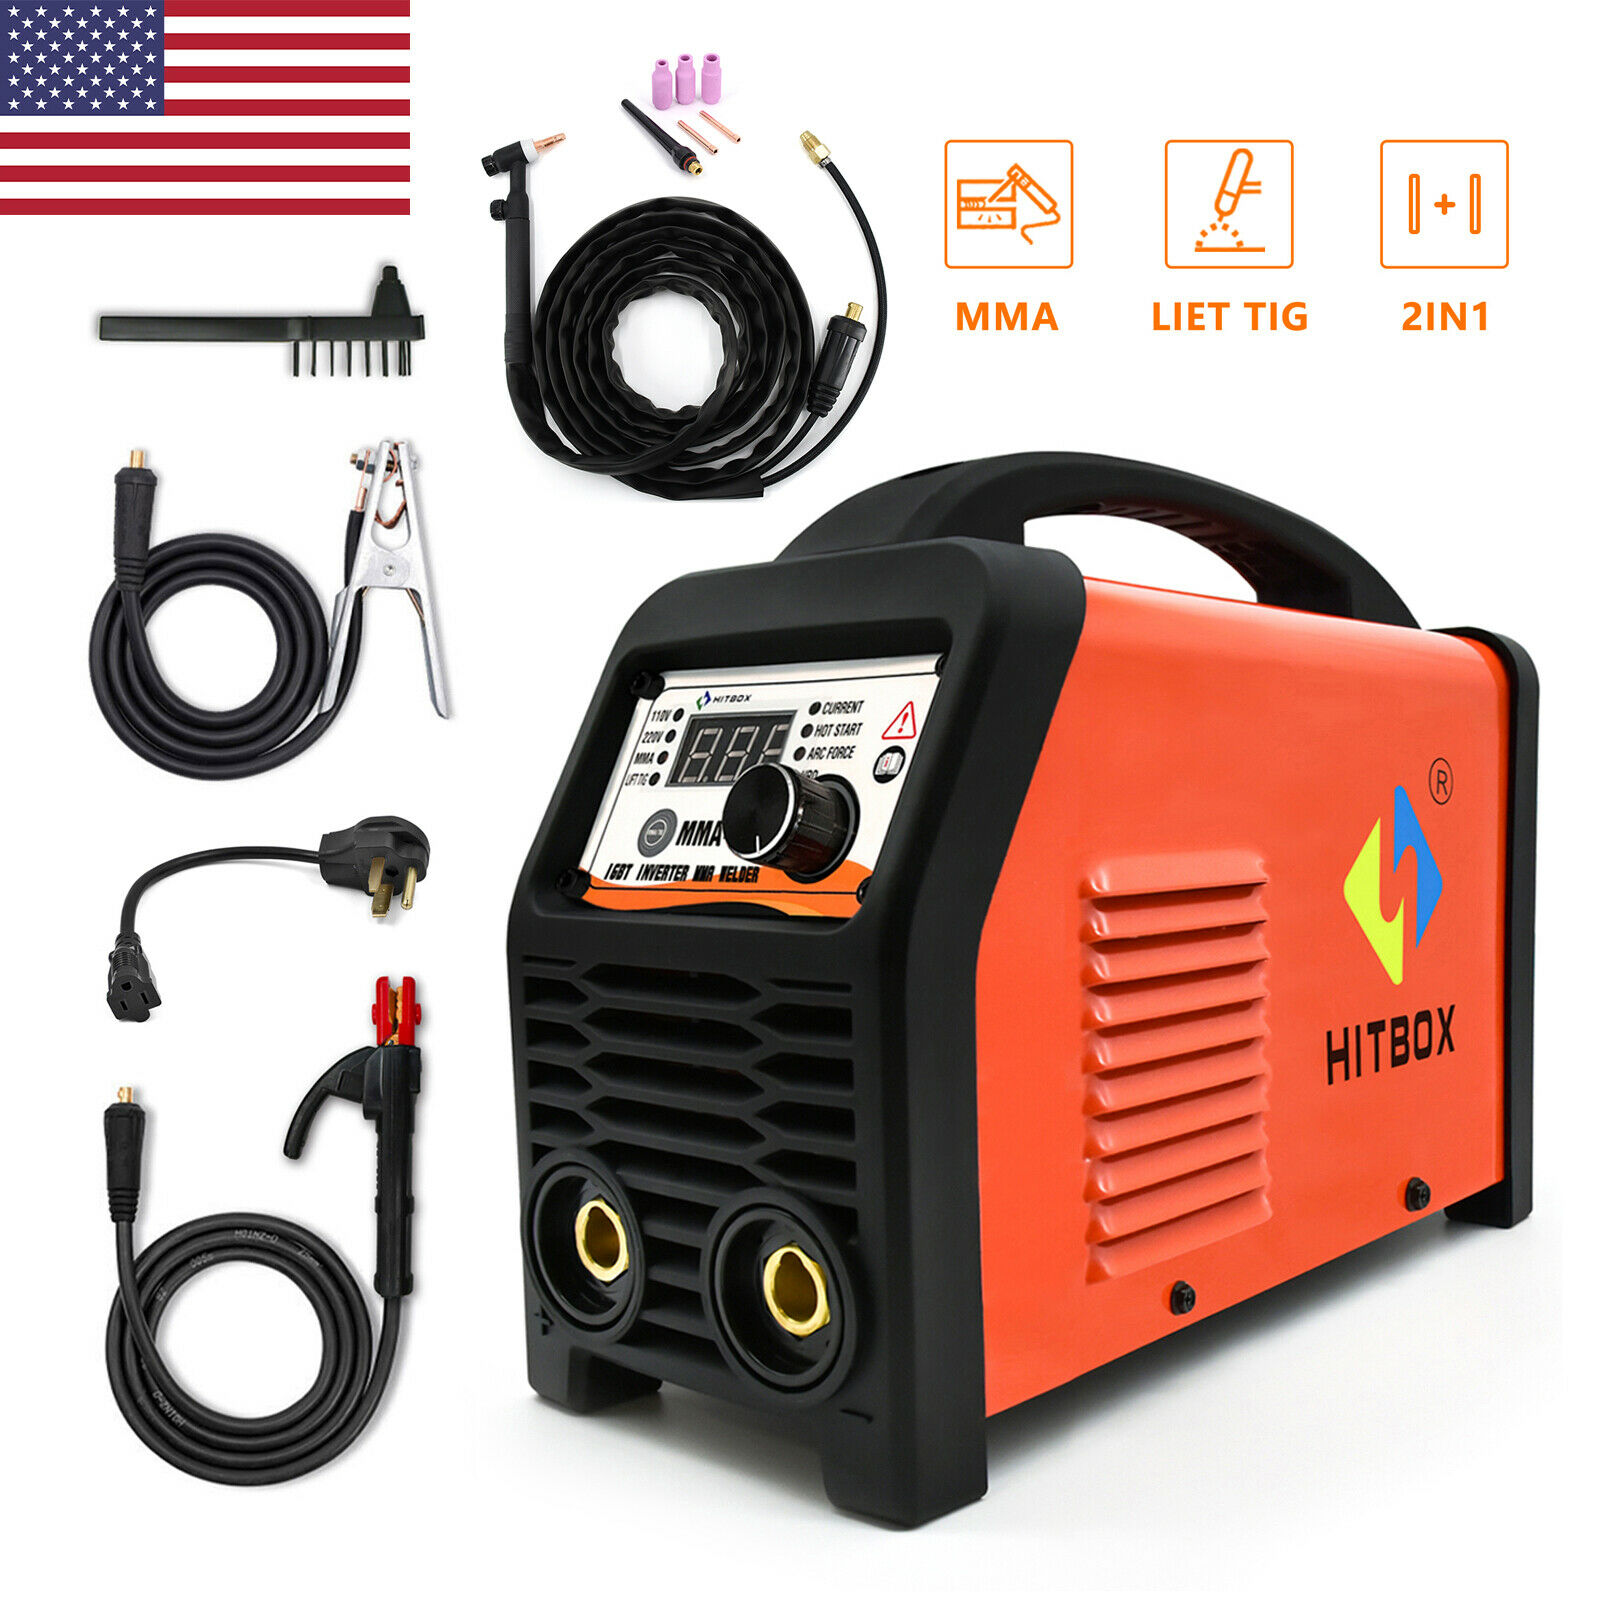 HITBOX ARC STICK TIG 2 IN 1 Welder 110V 220V Dual Volt MMA Welding Machine 200A. Available Now for 168.98